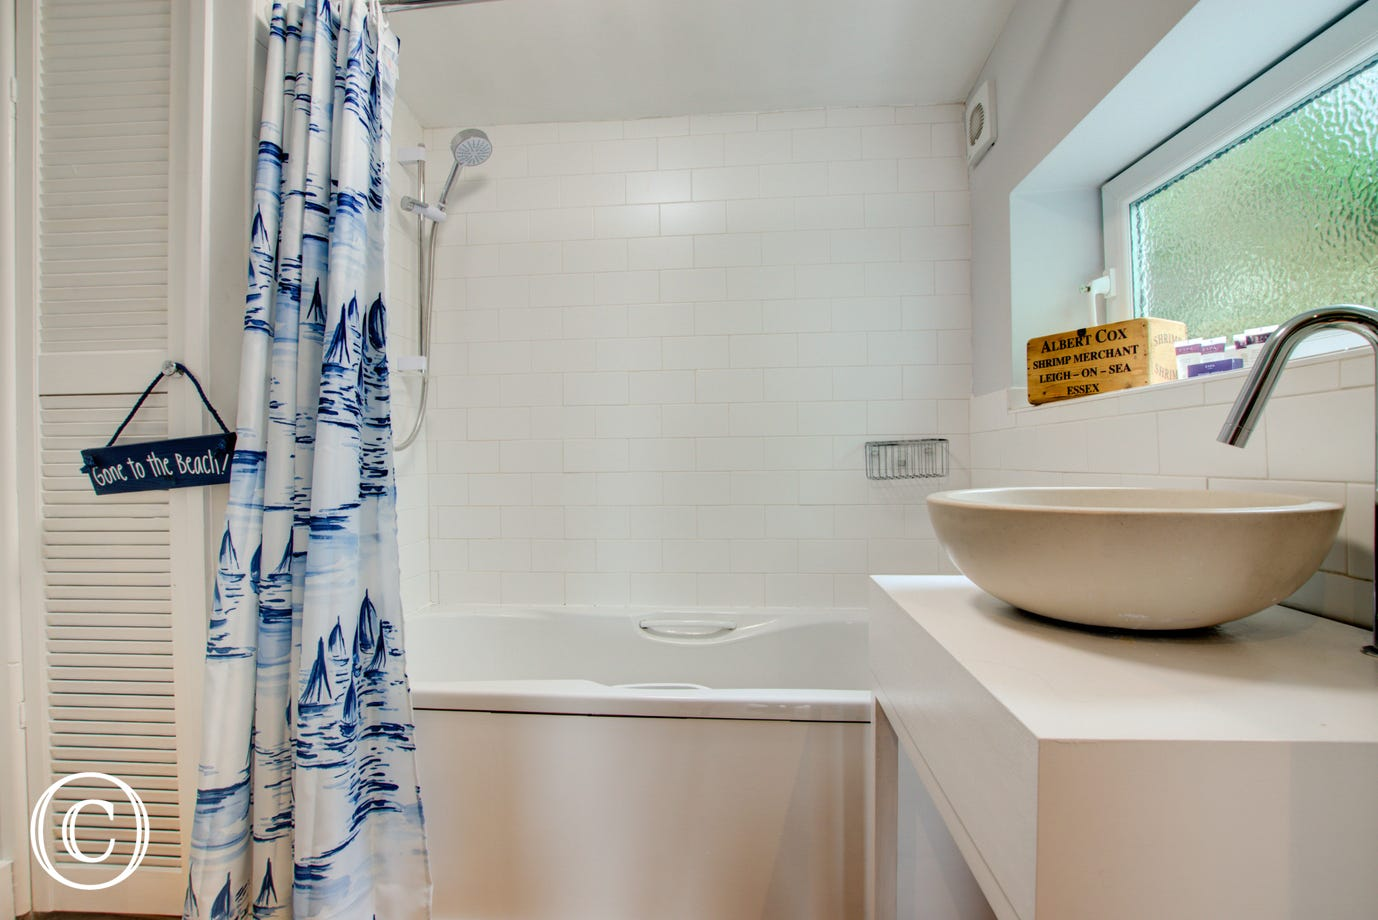 Bathroom: Located on the ground floor and comprises of a panelled bath with electric shower over, low level W.C. and a contemporary round washbasin set into a wooden vanity unit.